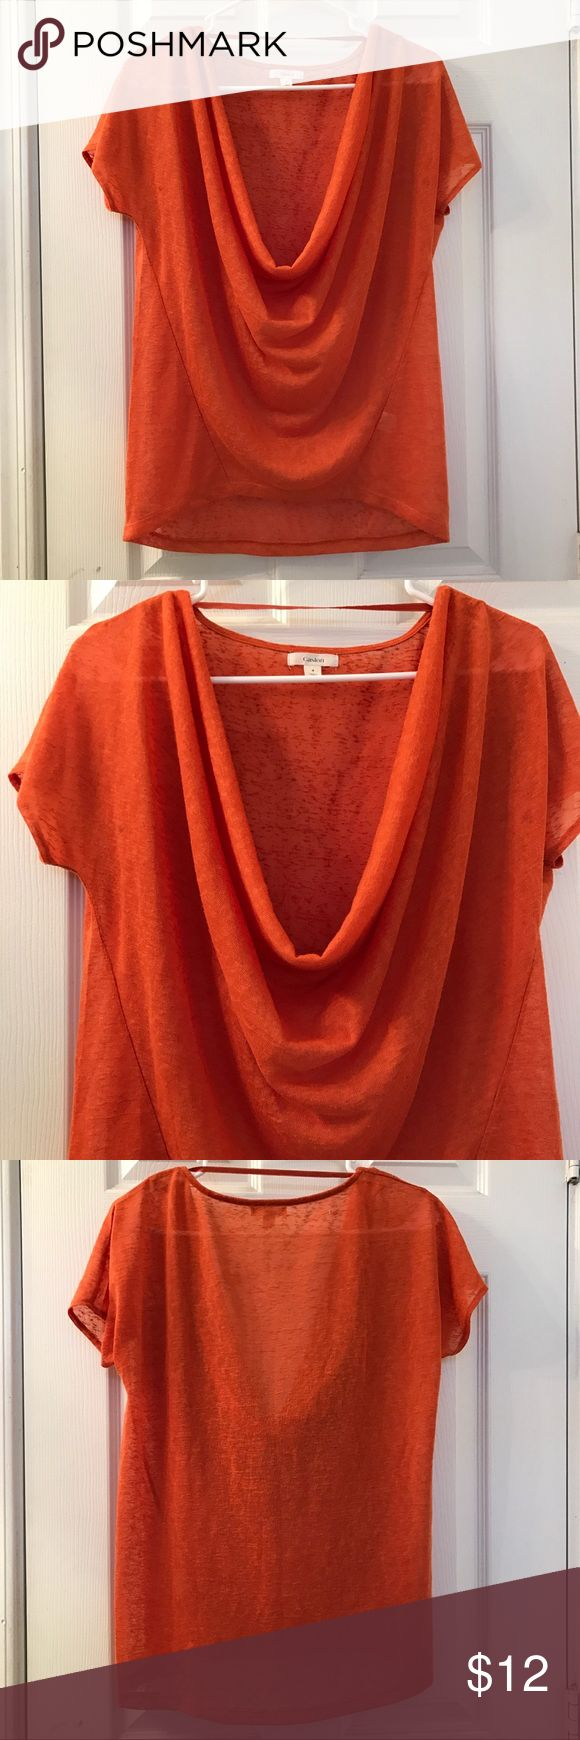 🎉Sale🎉Caslon Burnt Orange Short Sleeve Top SizeS 🎉One day sale only, prices will return to original price after today🎉Caslon short sleeve top. Size S. Burnt orange color. Semi sheer knit. Has a low drape neck. 100% polyester. Super cute and perfect for a day out on the town! Measurements: underarm to underarm- 19 inches, top of shoulder to bottom of hem- 25 inches, length of sleeve- 5.5 inches. Always looking for your best offer! Caslon Tops Tees - Short Sleeve